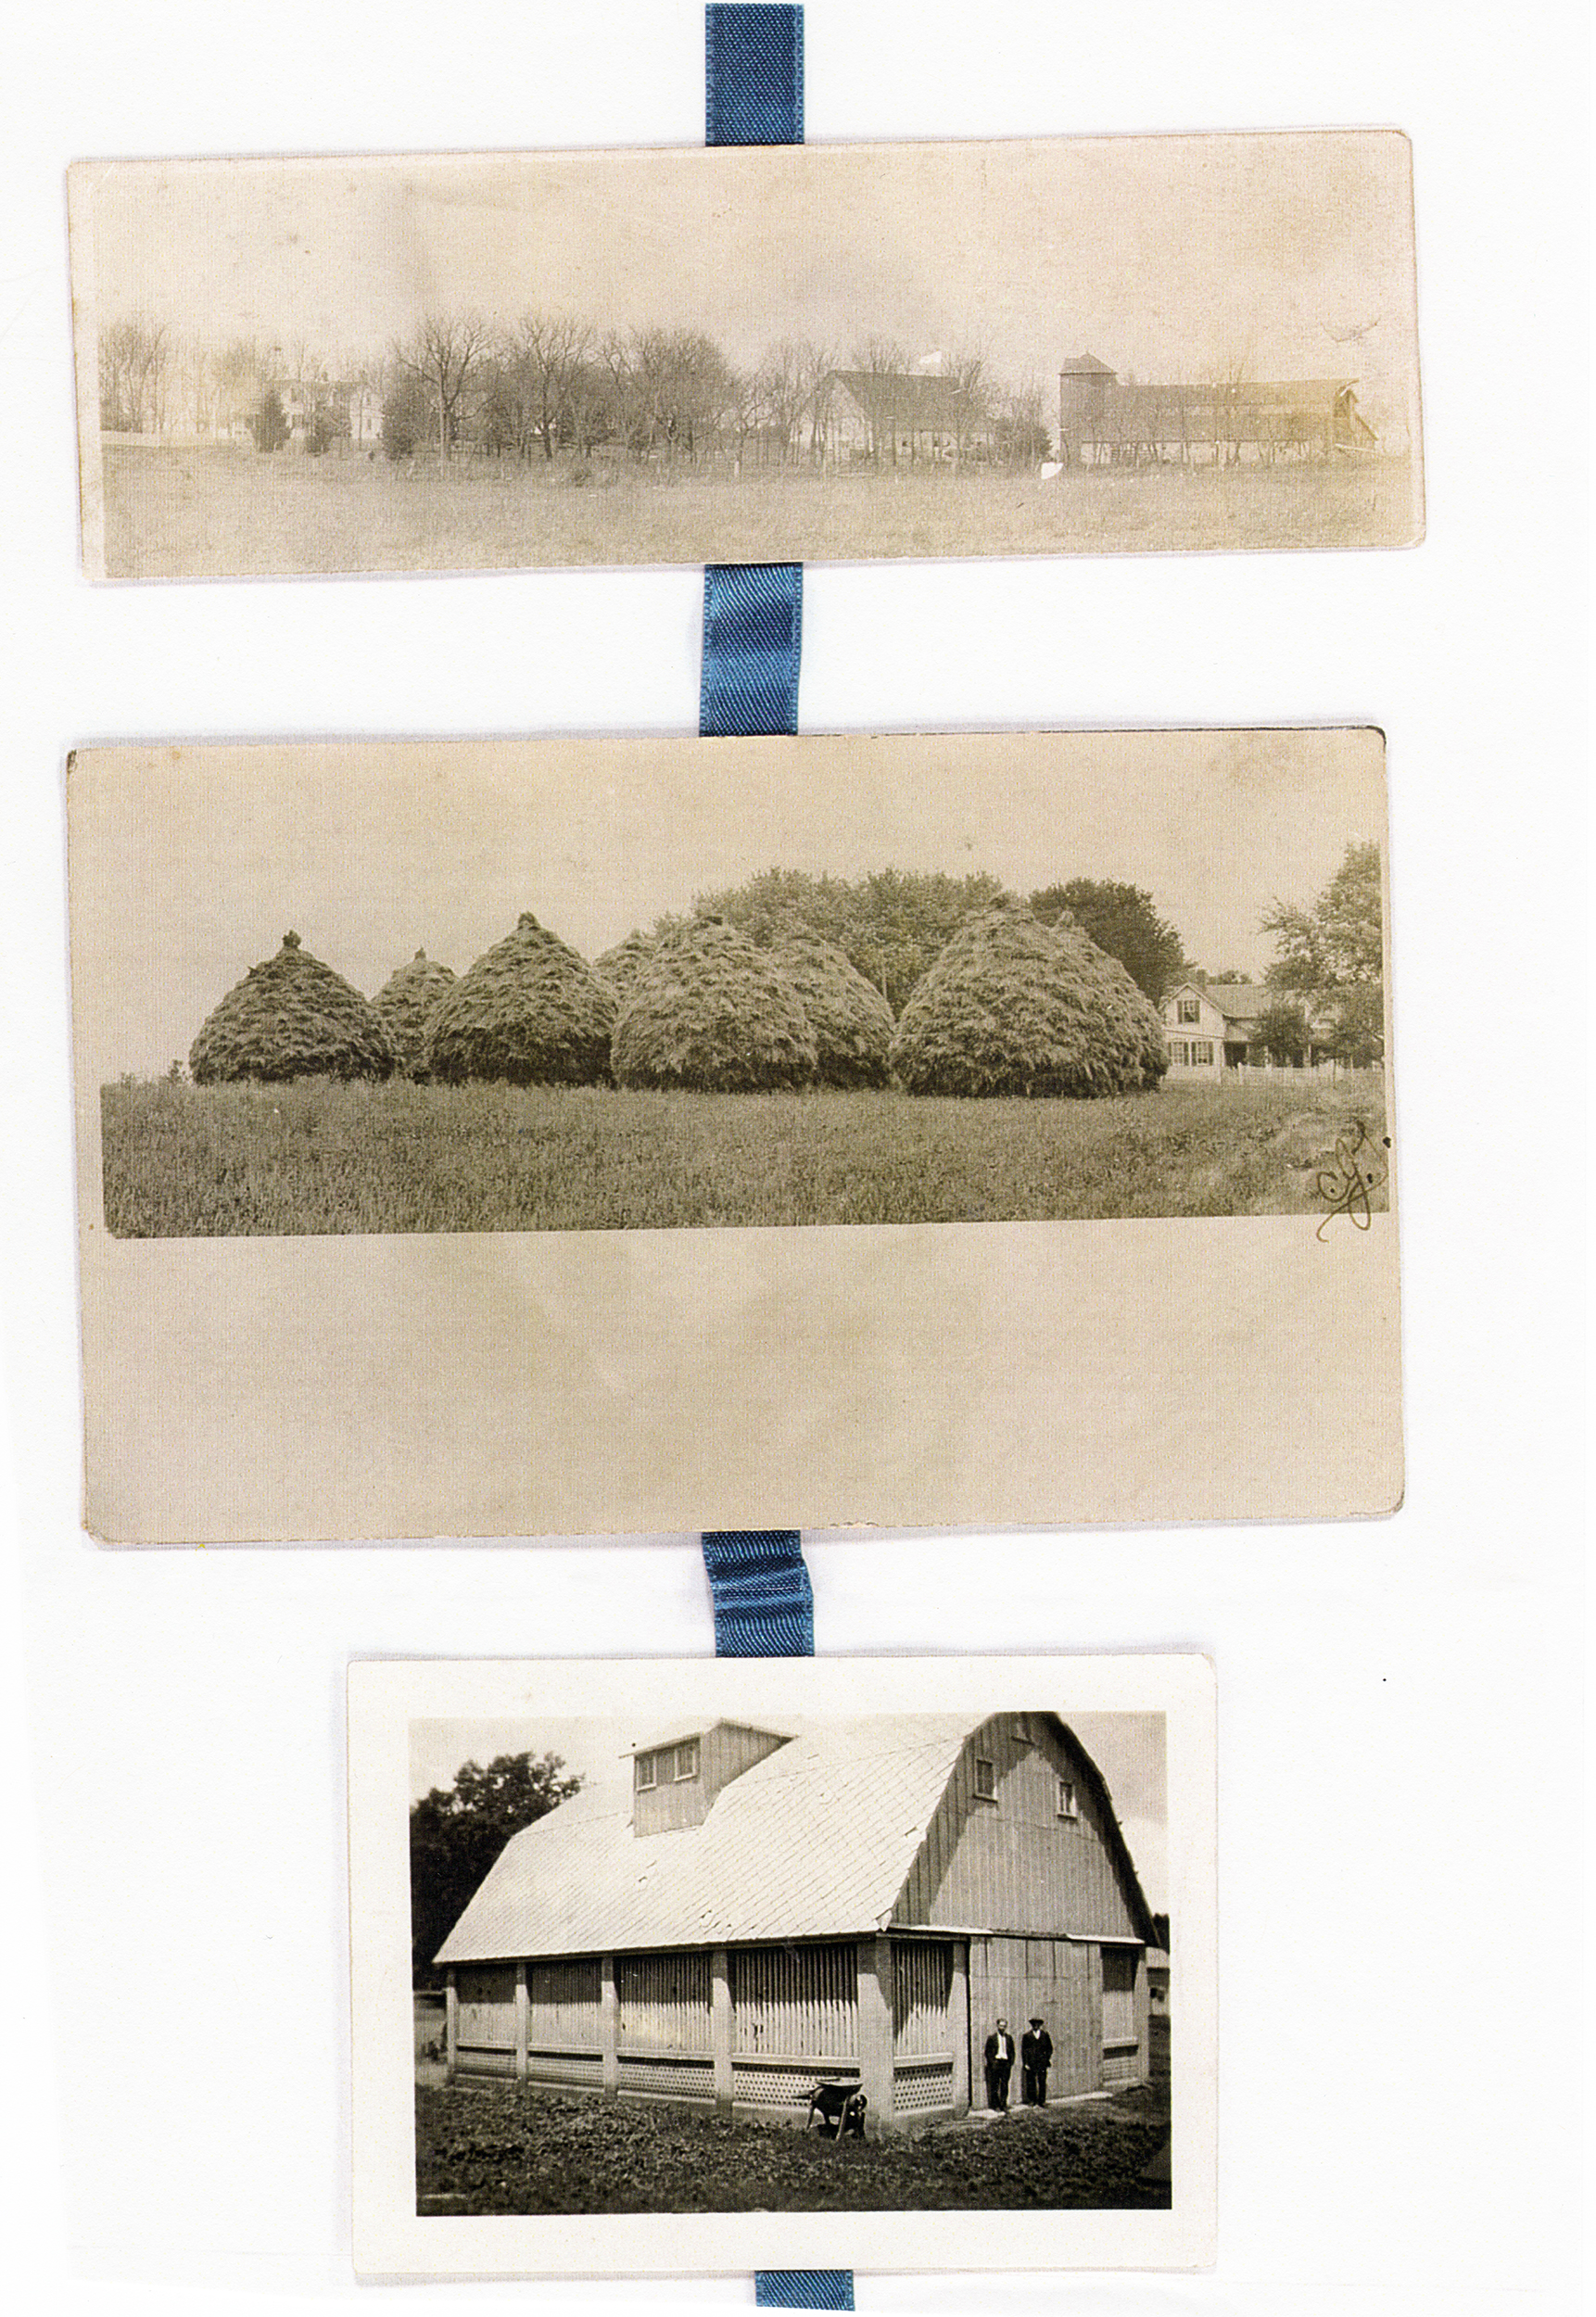 Top: view of Follinglo farm from the Southeast Middle: Bales of hay on Follinglo farm Bottom: Follinglo corncrib